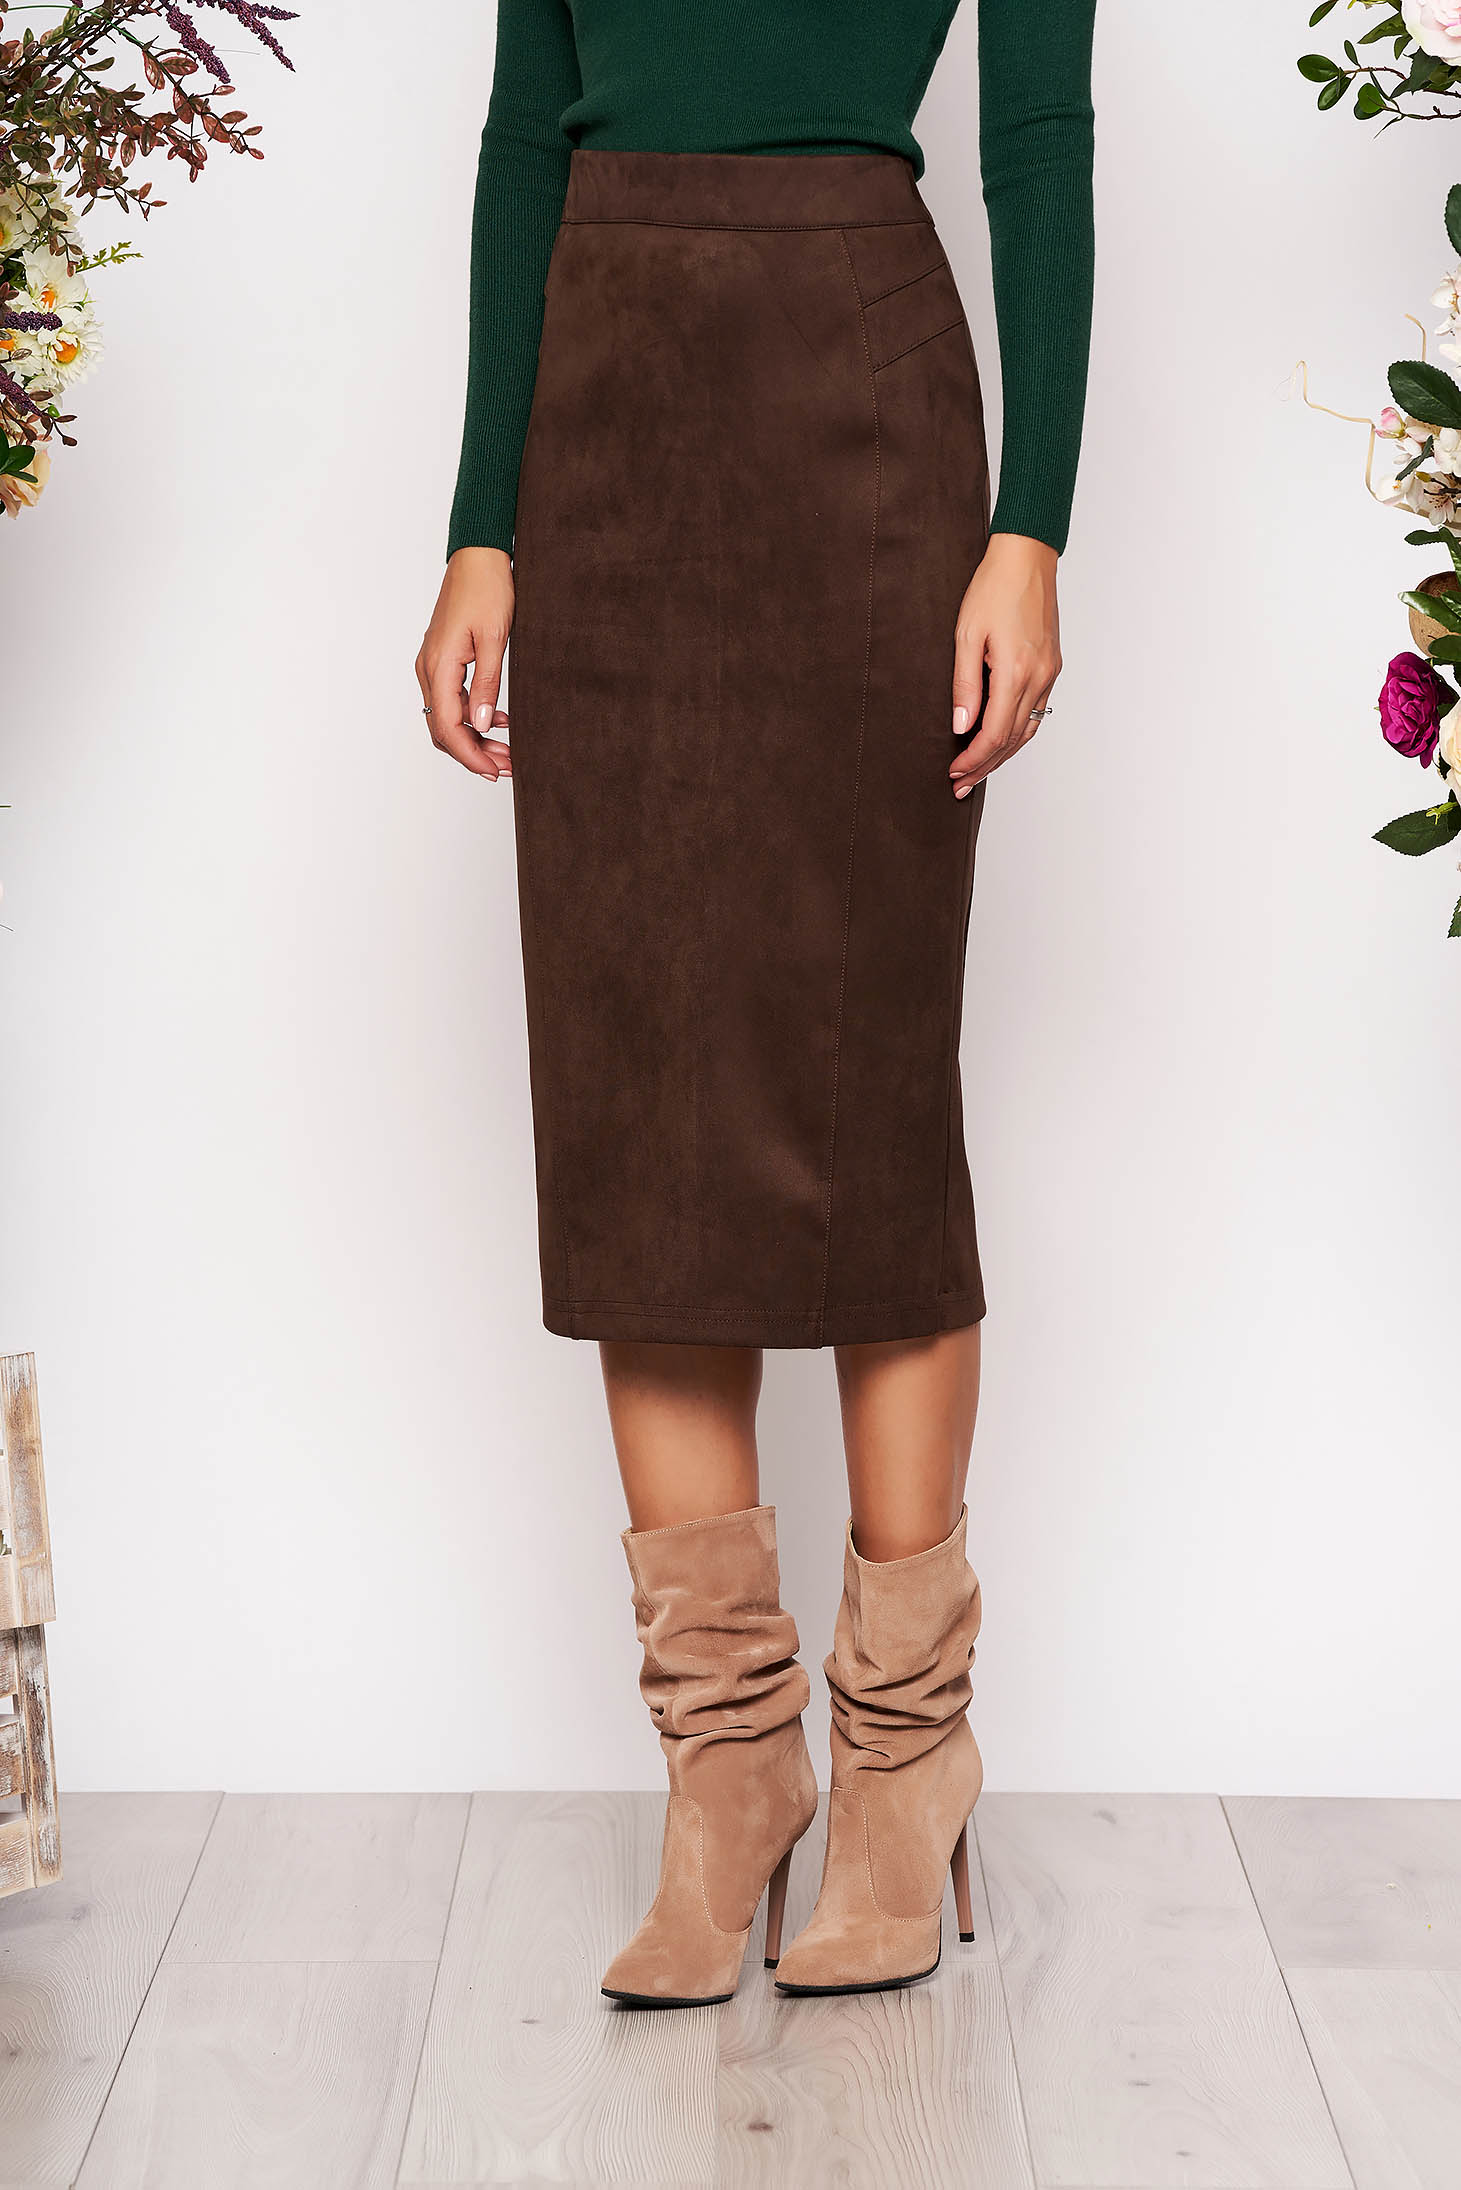 hot product clear-cut texture big selection of 2019 StarShinerS darkbrown midi high waisted pencil skirt from velvet fabric